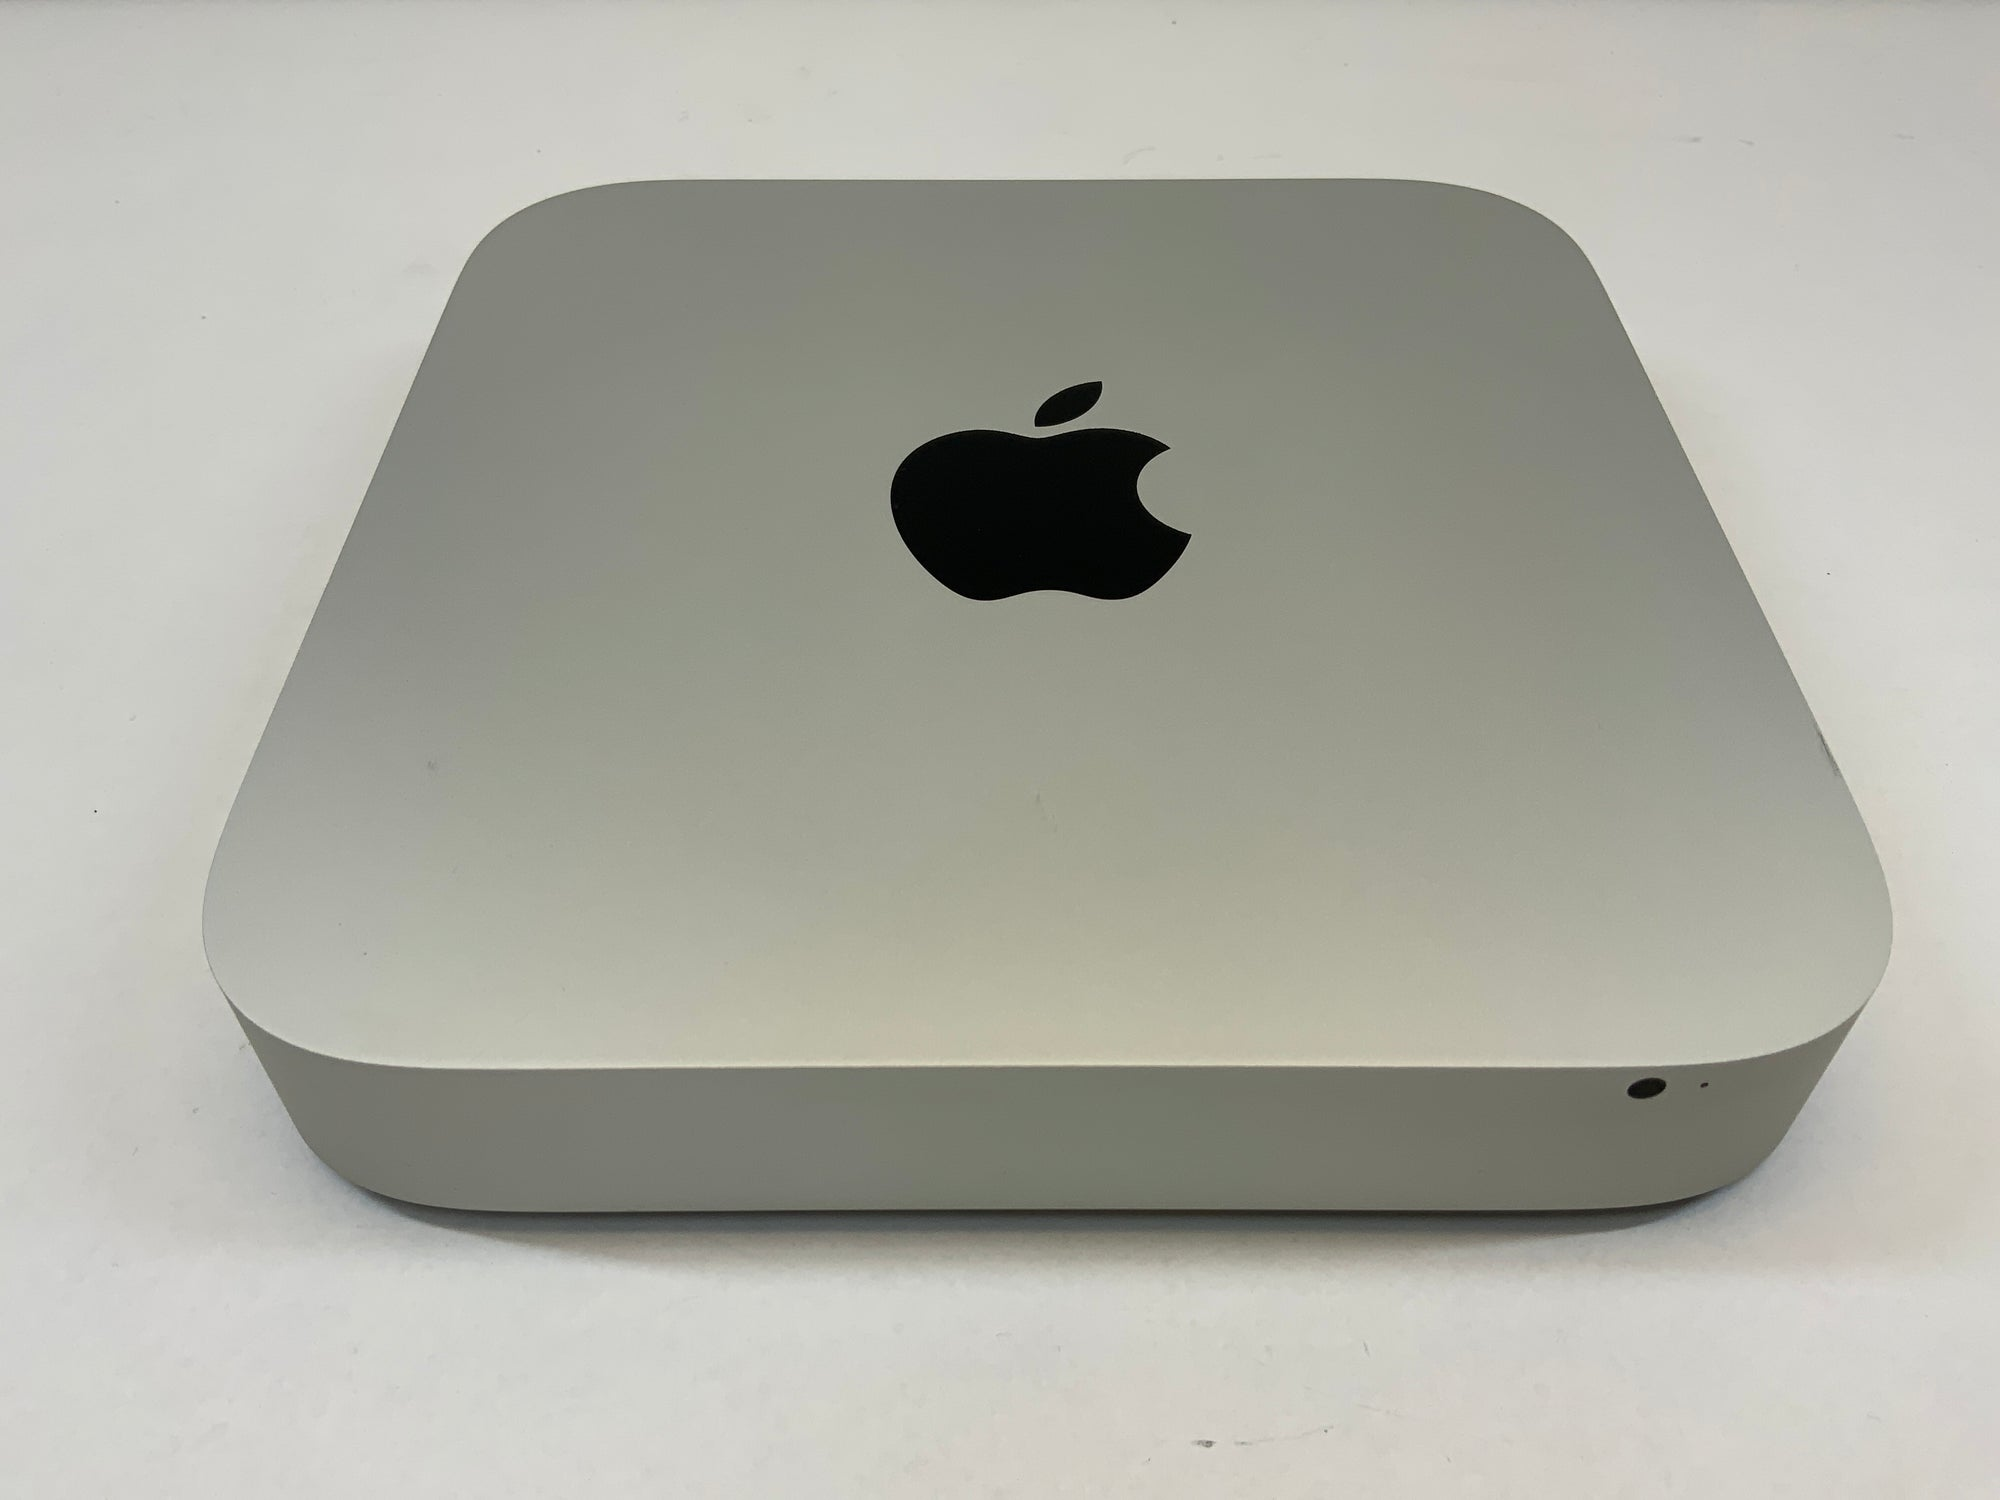 2012 Apple MAC MINI A1347 USFF i5 3rd Gen. 750GB HDD 8GB RAM OSX Catalina